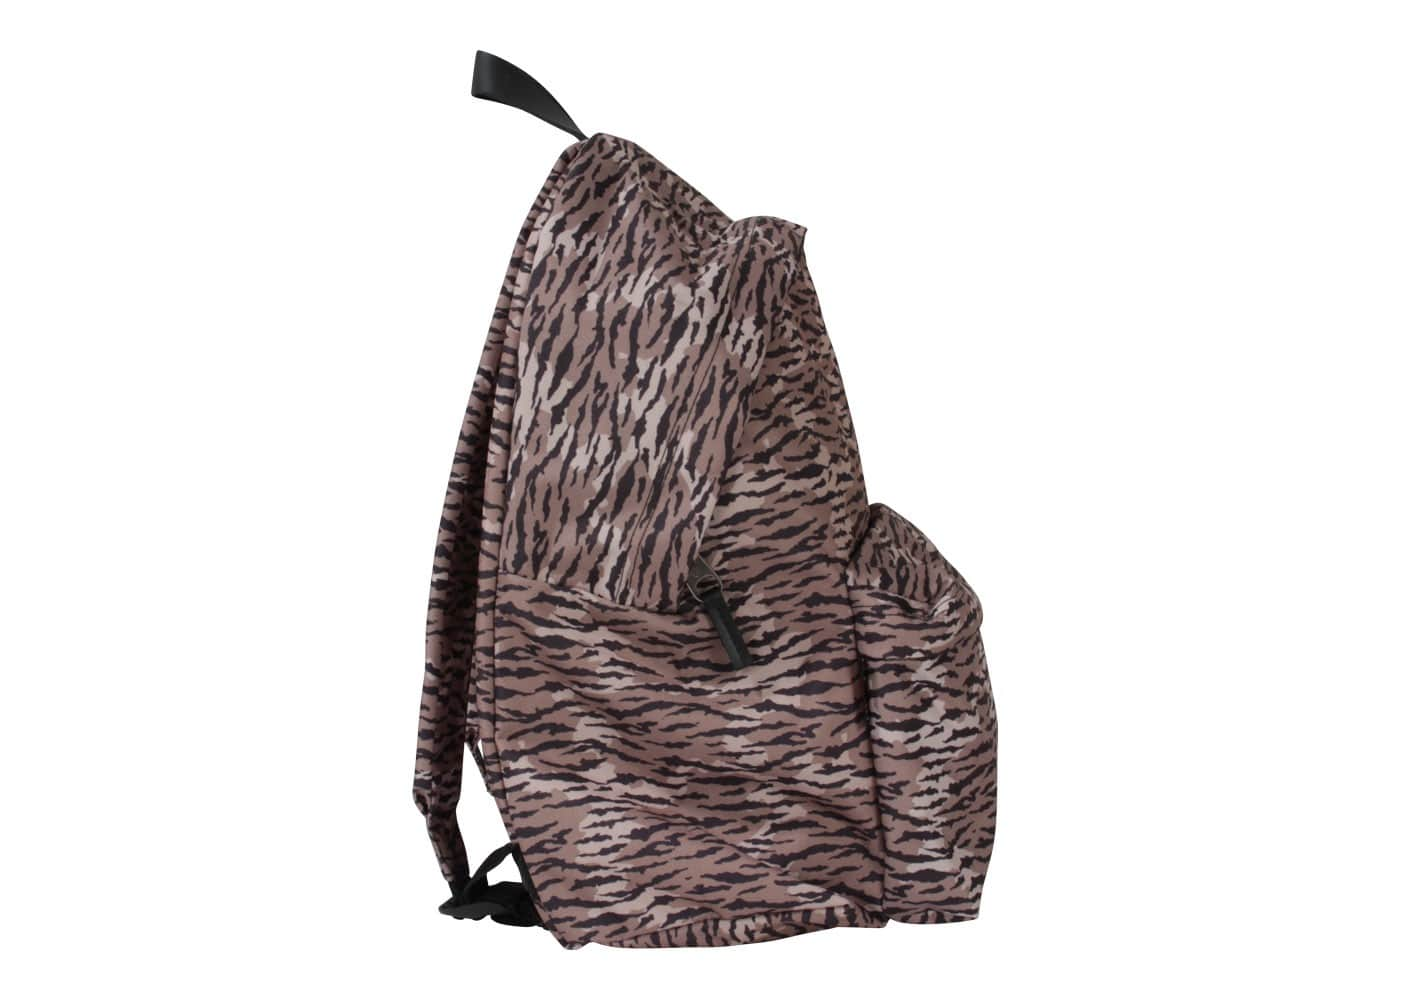 eastpak sac dos padded leopard sacs sacoches chausport. Black Bedroom Furniture Sets. Home Design Ideas